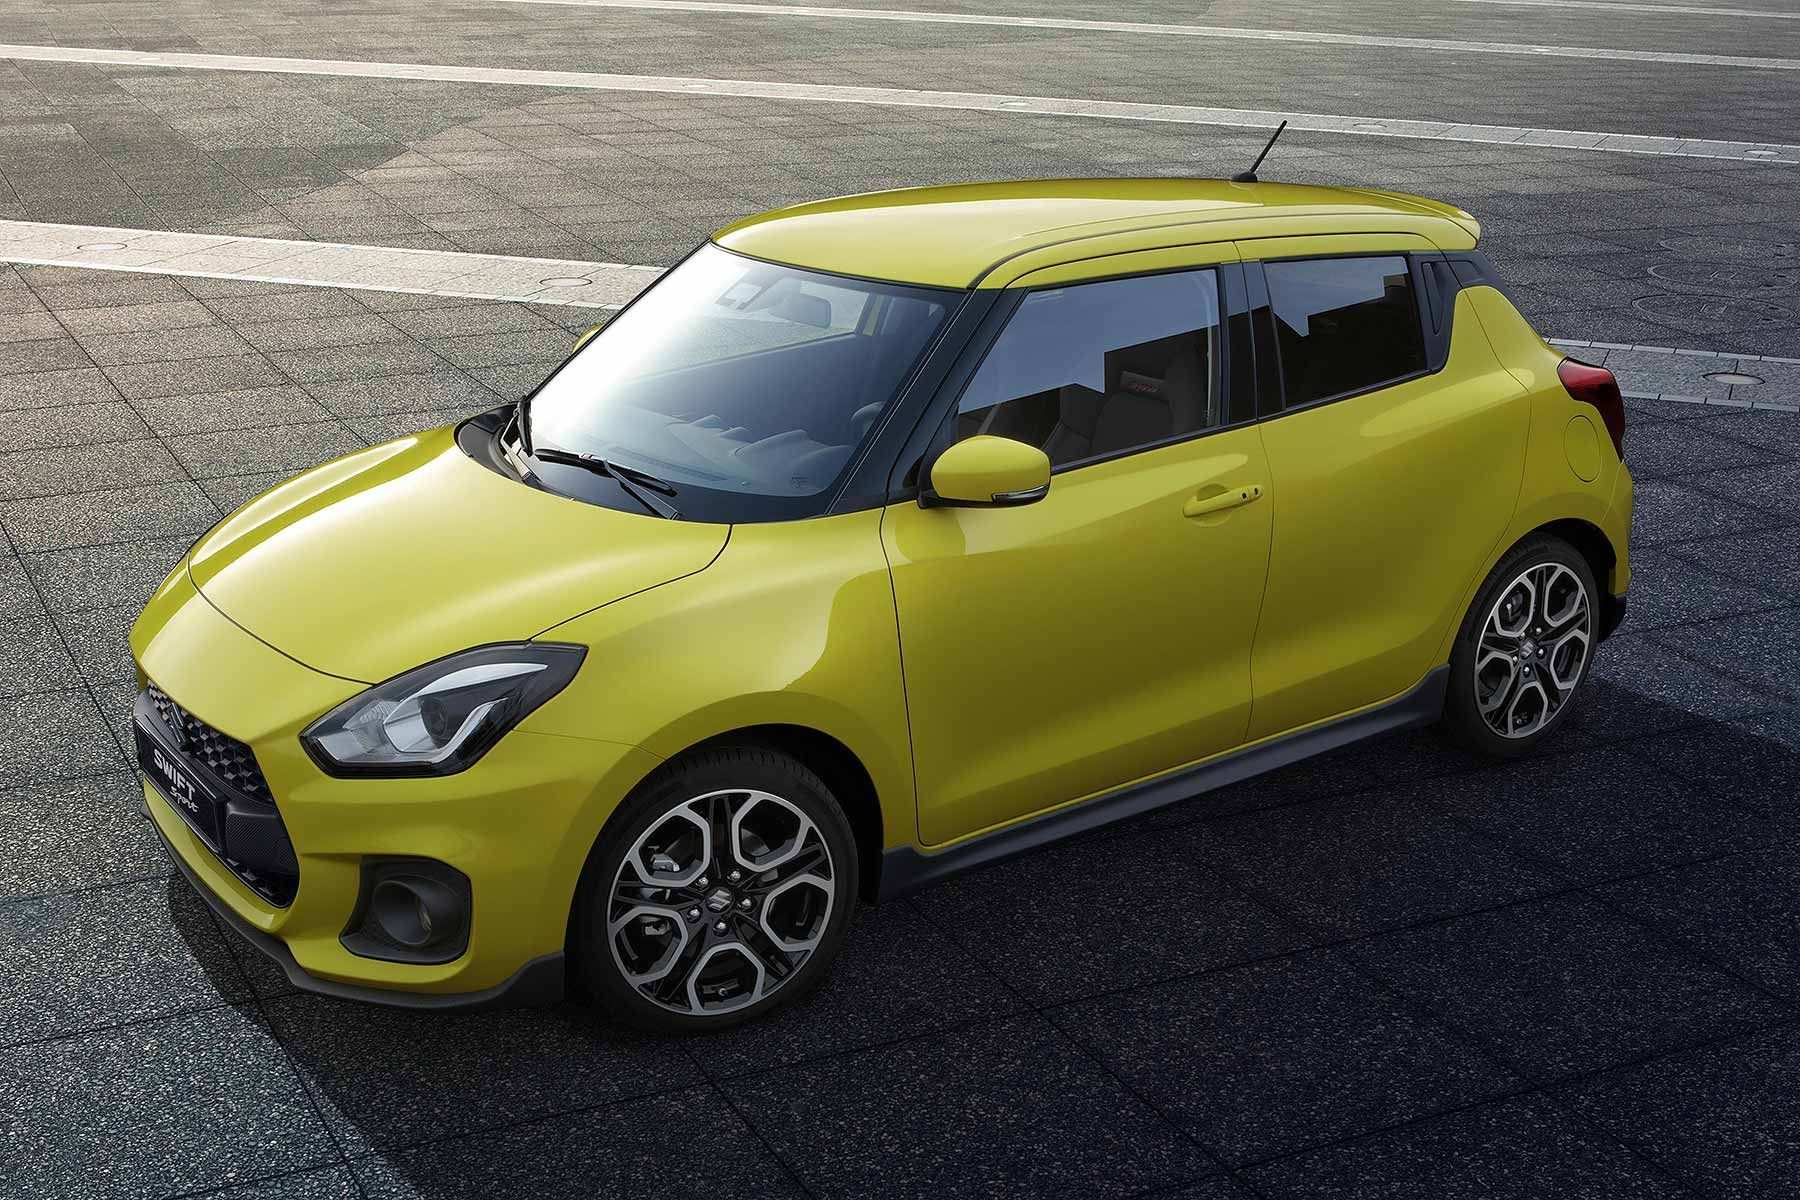 37 Best Review 2020 New Suzuki Swift Sport Exterior for 2020 New Suzuki Swift Sport